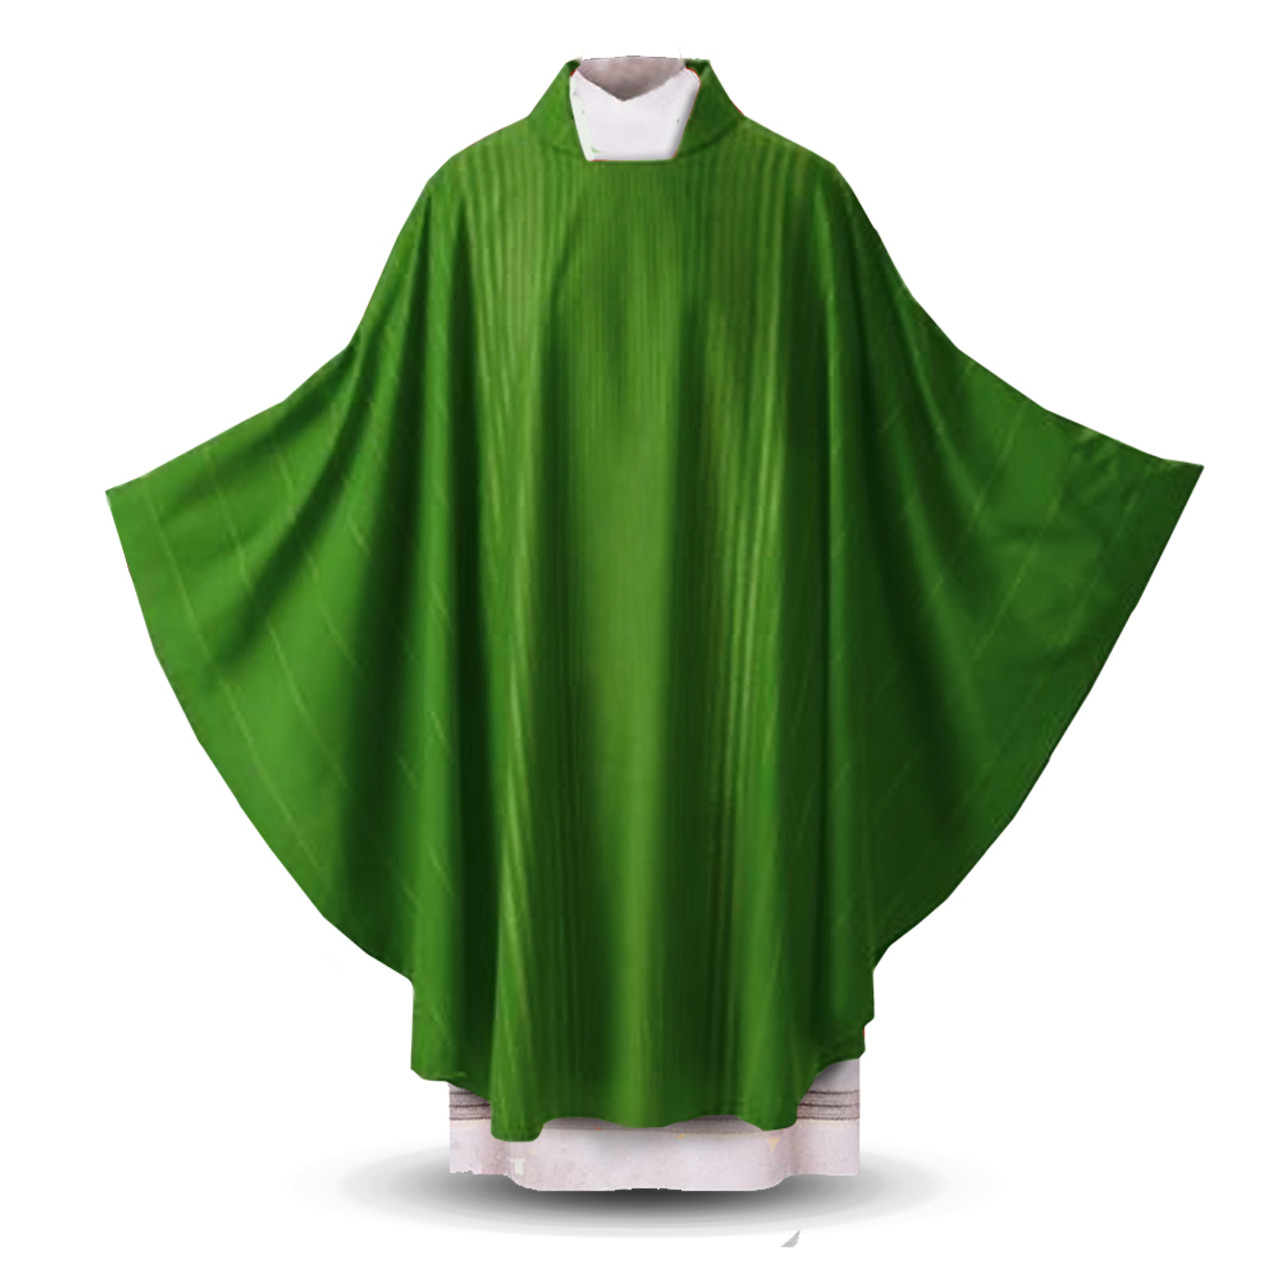 01.14 Green Chasuble in Rayada from Sorgente